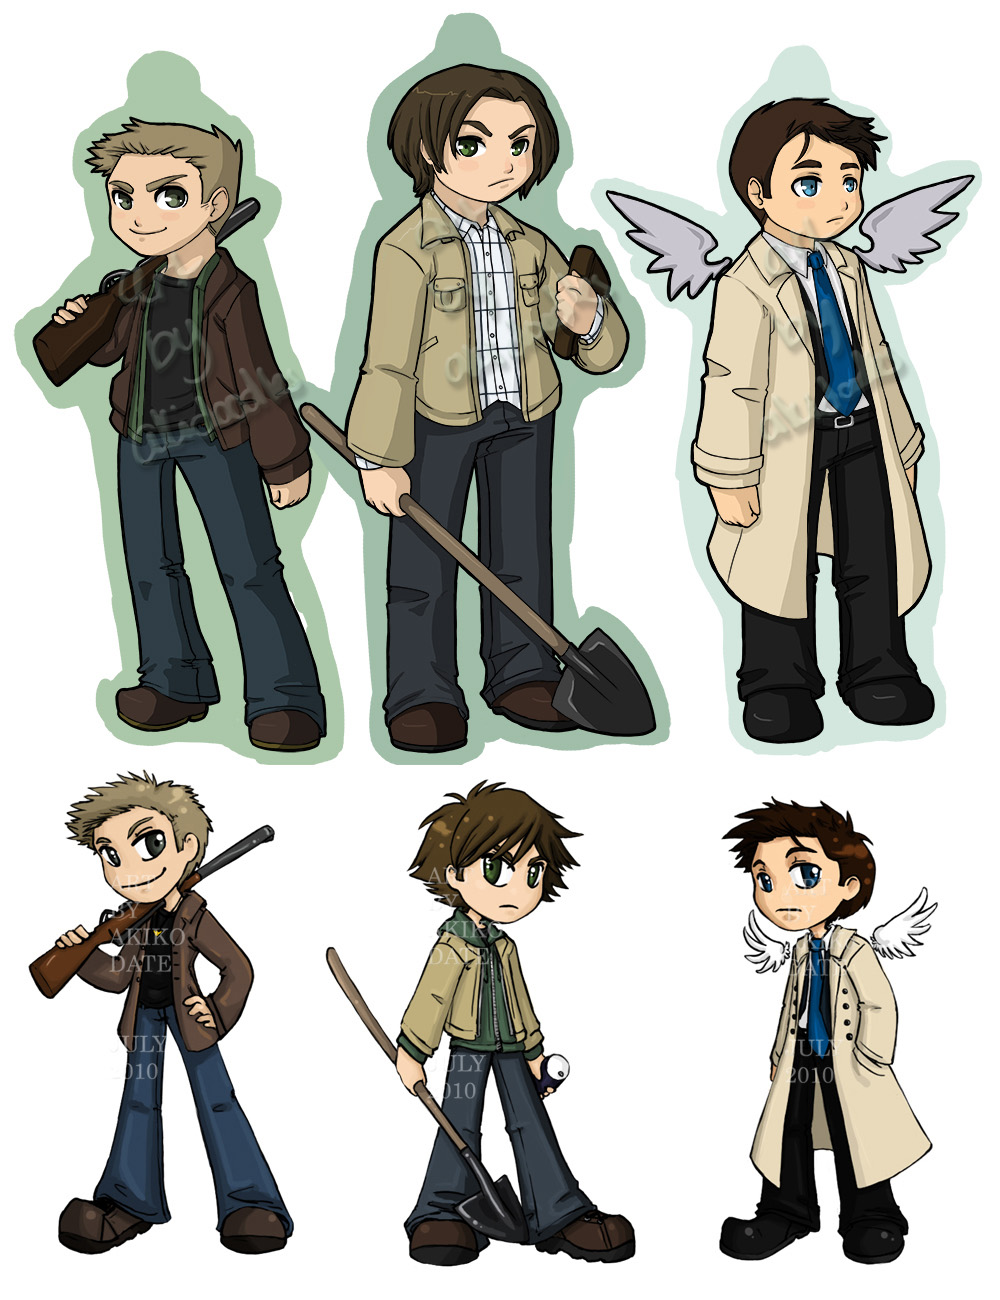 Supernatural - Stickers are more expensive now by akiwitch